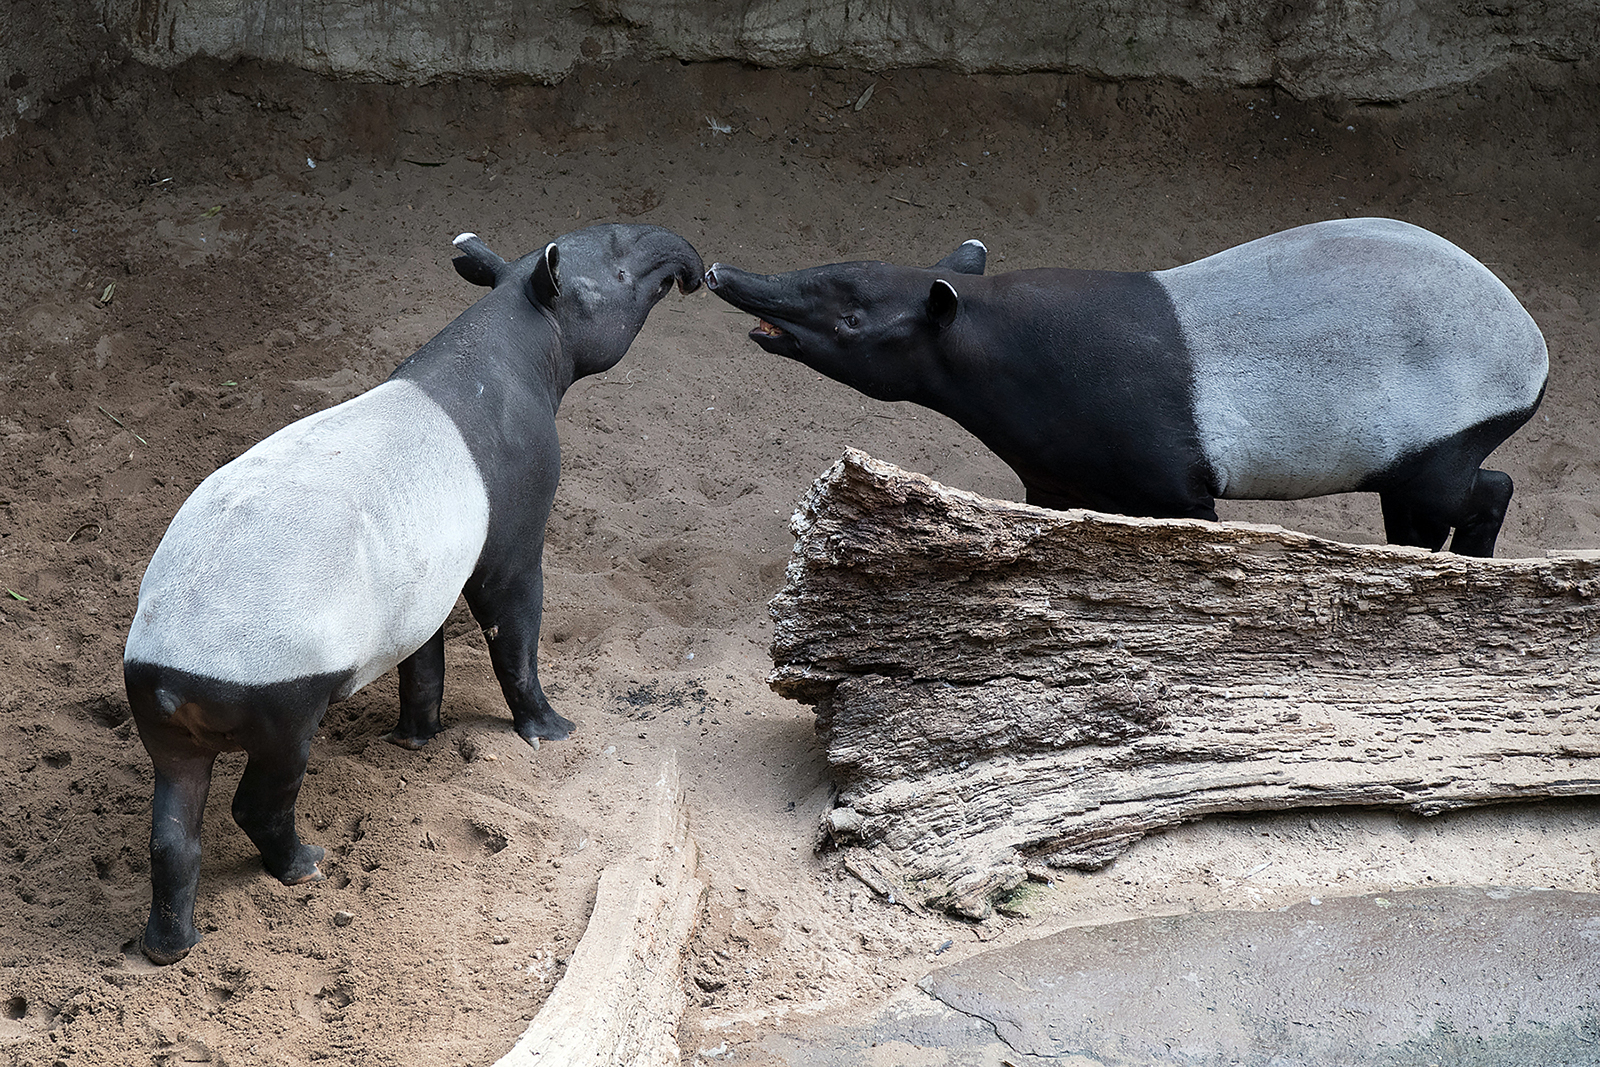 Malayan Tapir – Clever Camouflage